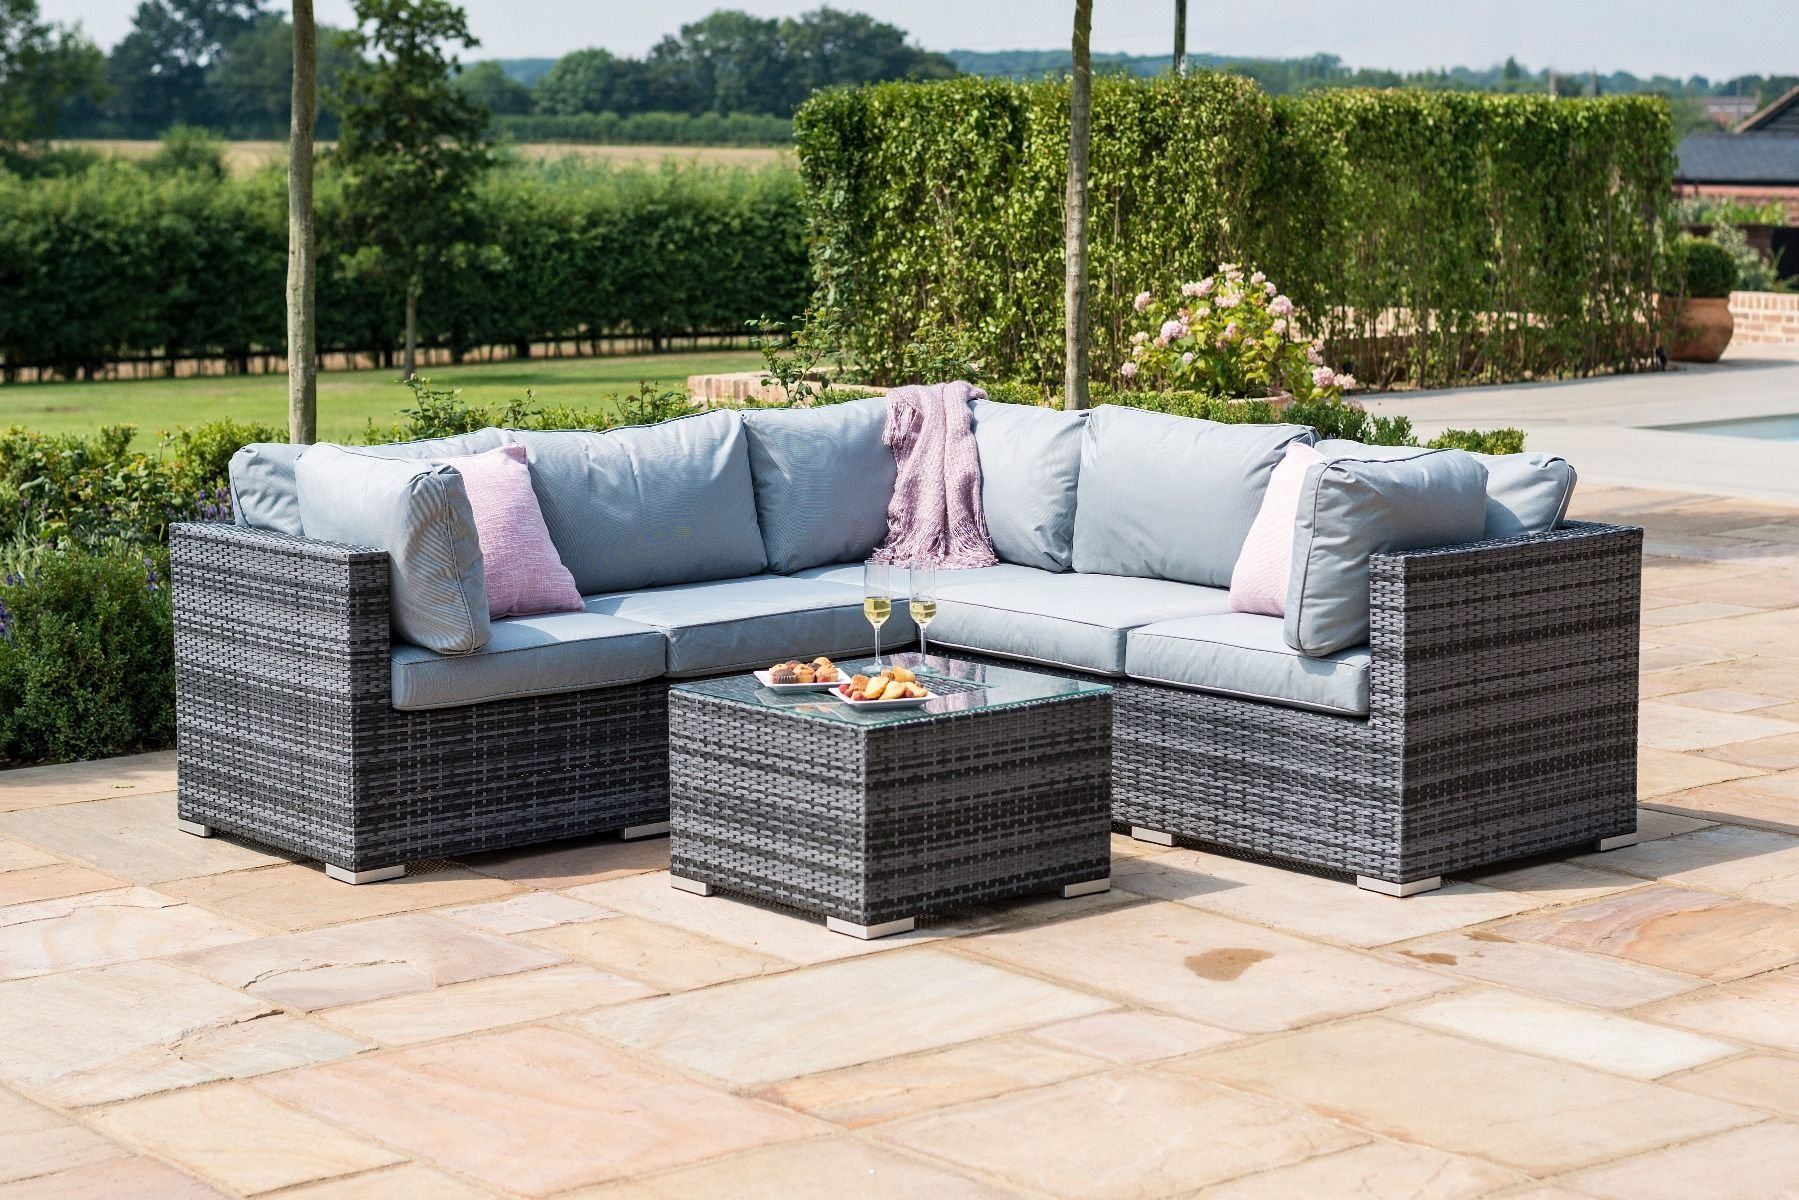 Maze Rattan Porto Corner Sofa Set Grey The Clearance Zone - Garden Furniture Clearance Edinburgh